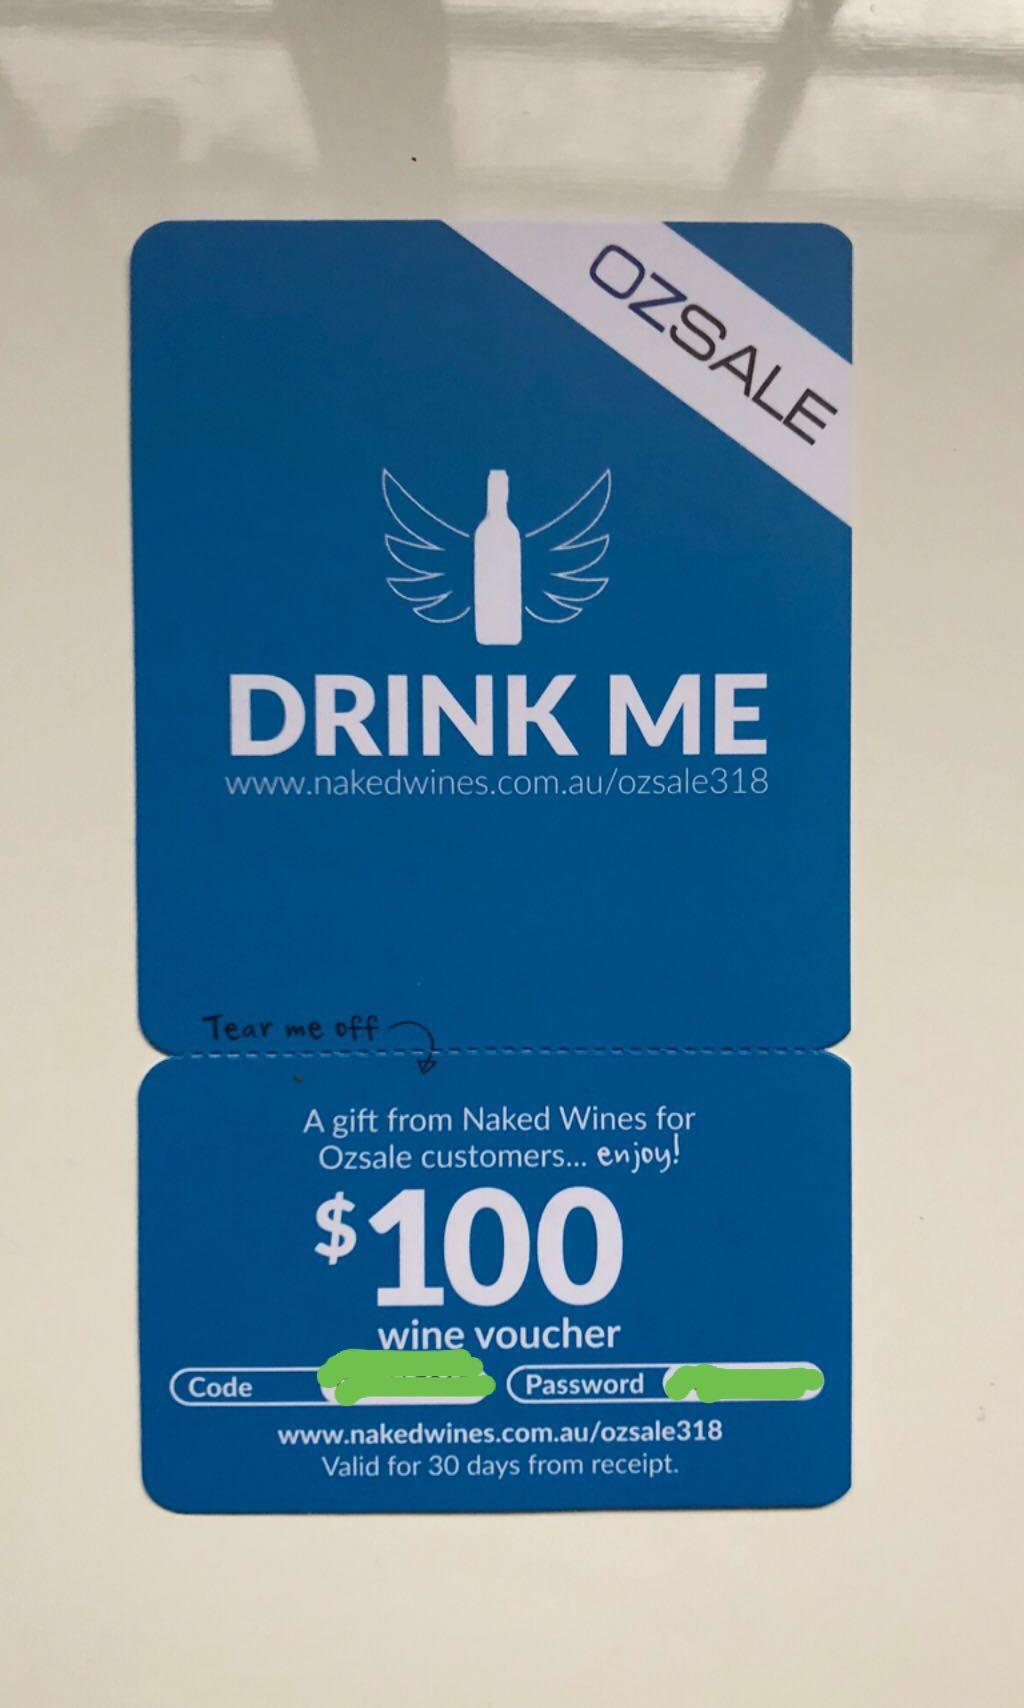 Naked Wines Voucher Entertainment Gift Cards Vouchers On